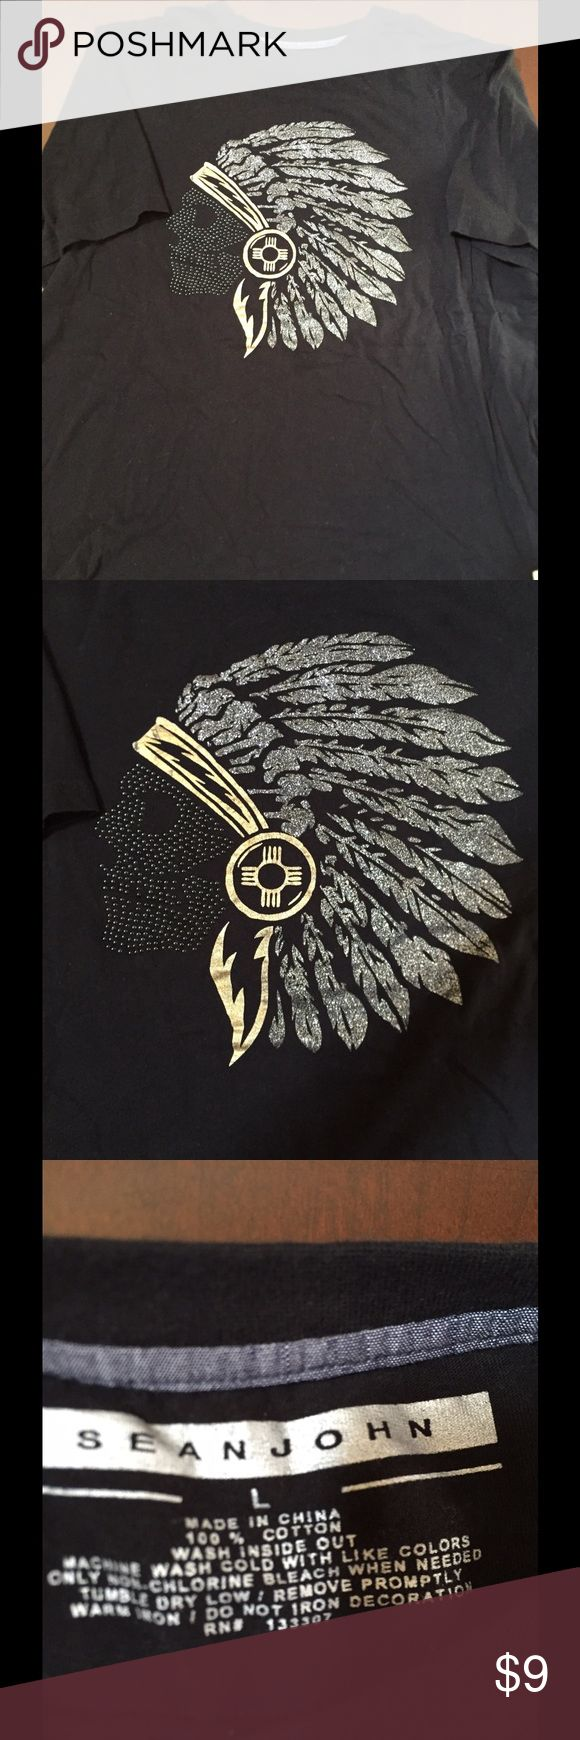 👕👕👕Black Sean John TShirt👕👕👕 This is also my sons. It's a nice TShirt with a large beaded Indians head. It really doesn't have any visible flaws. It's washed and ready to go. Sean John Shirts Tees - Short Sleeve